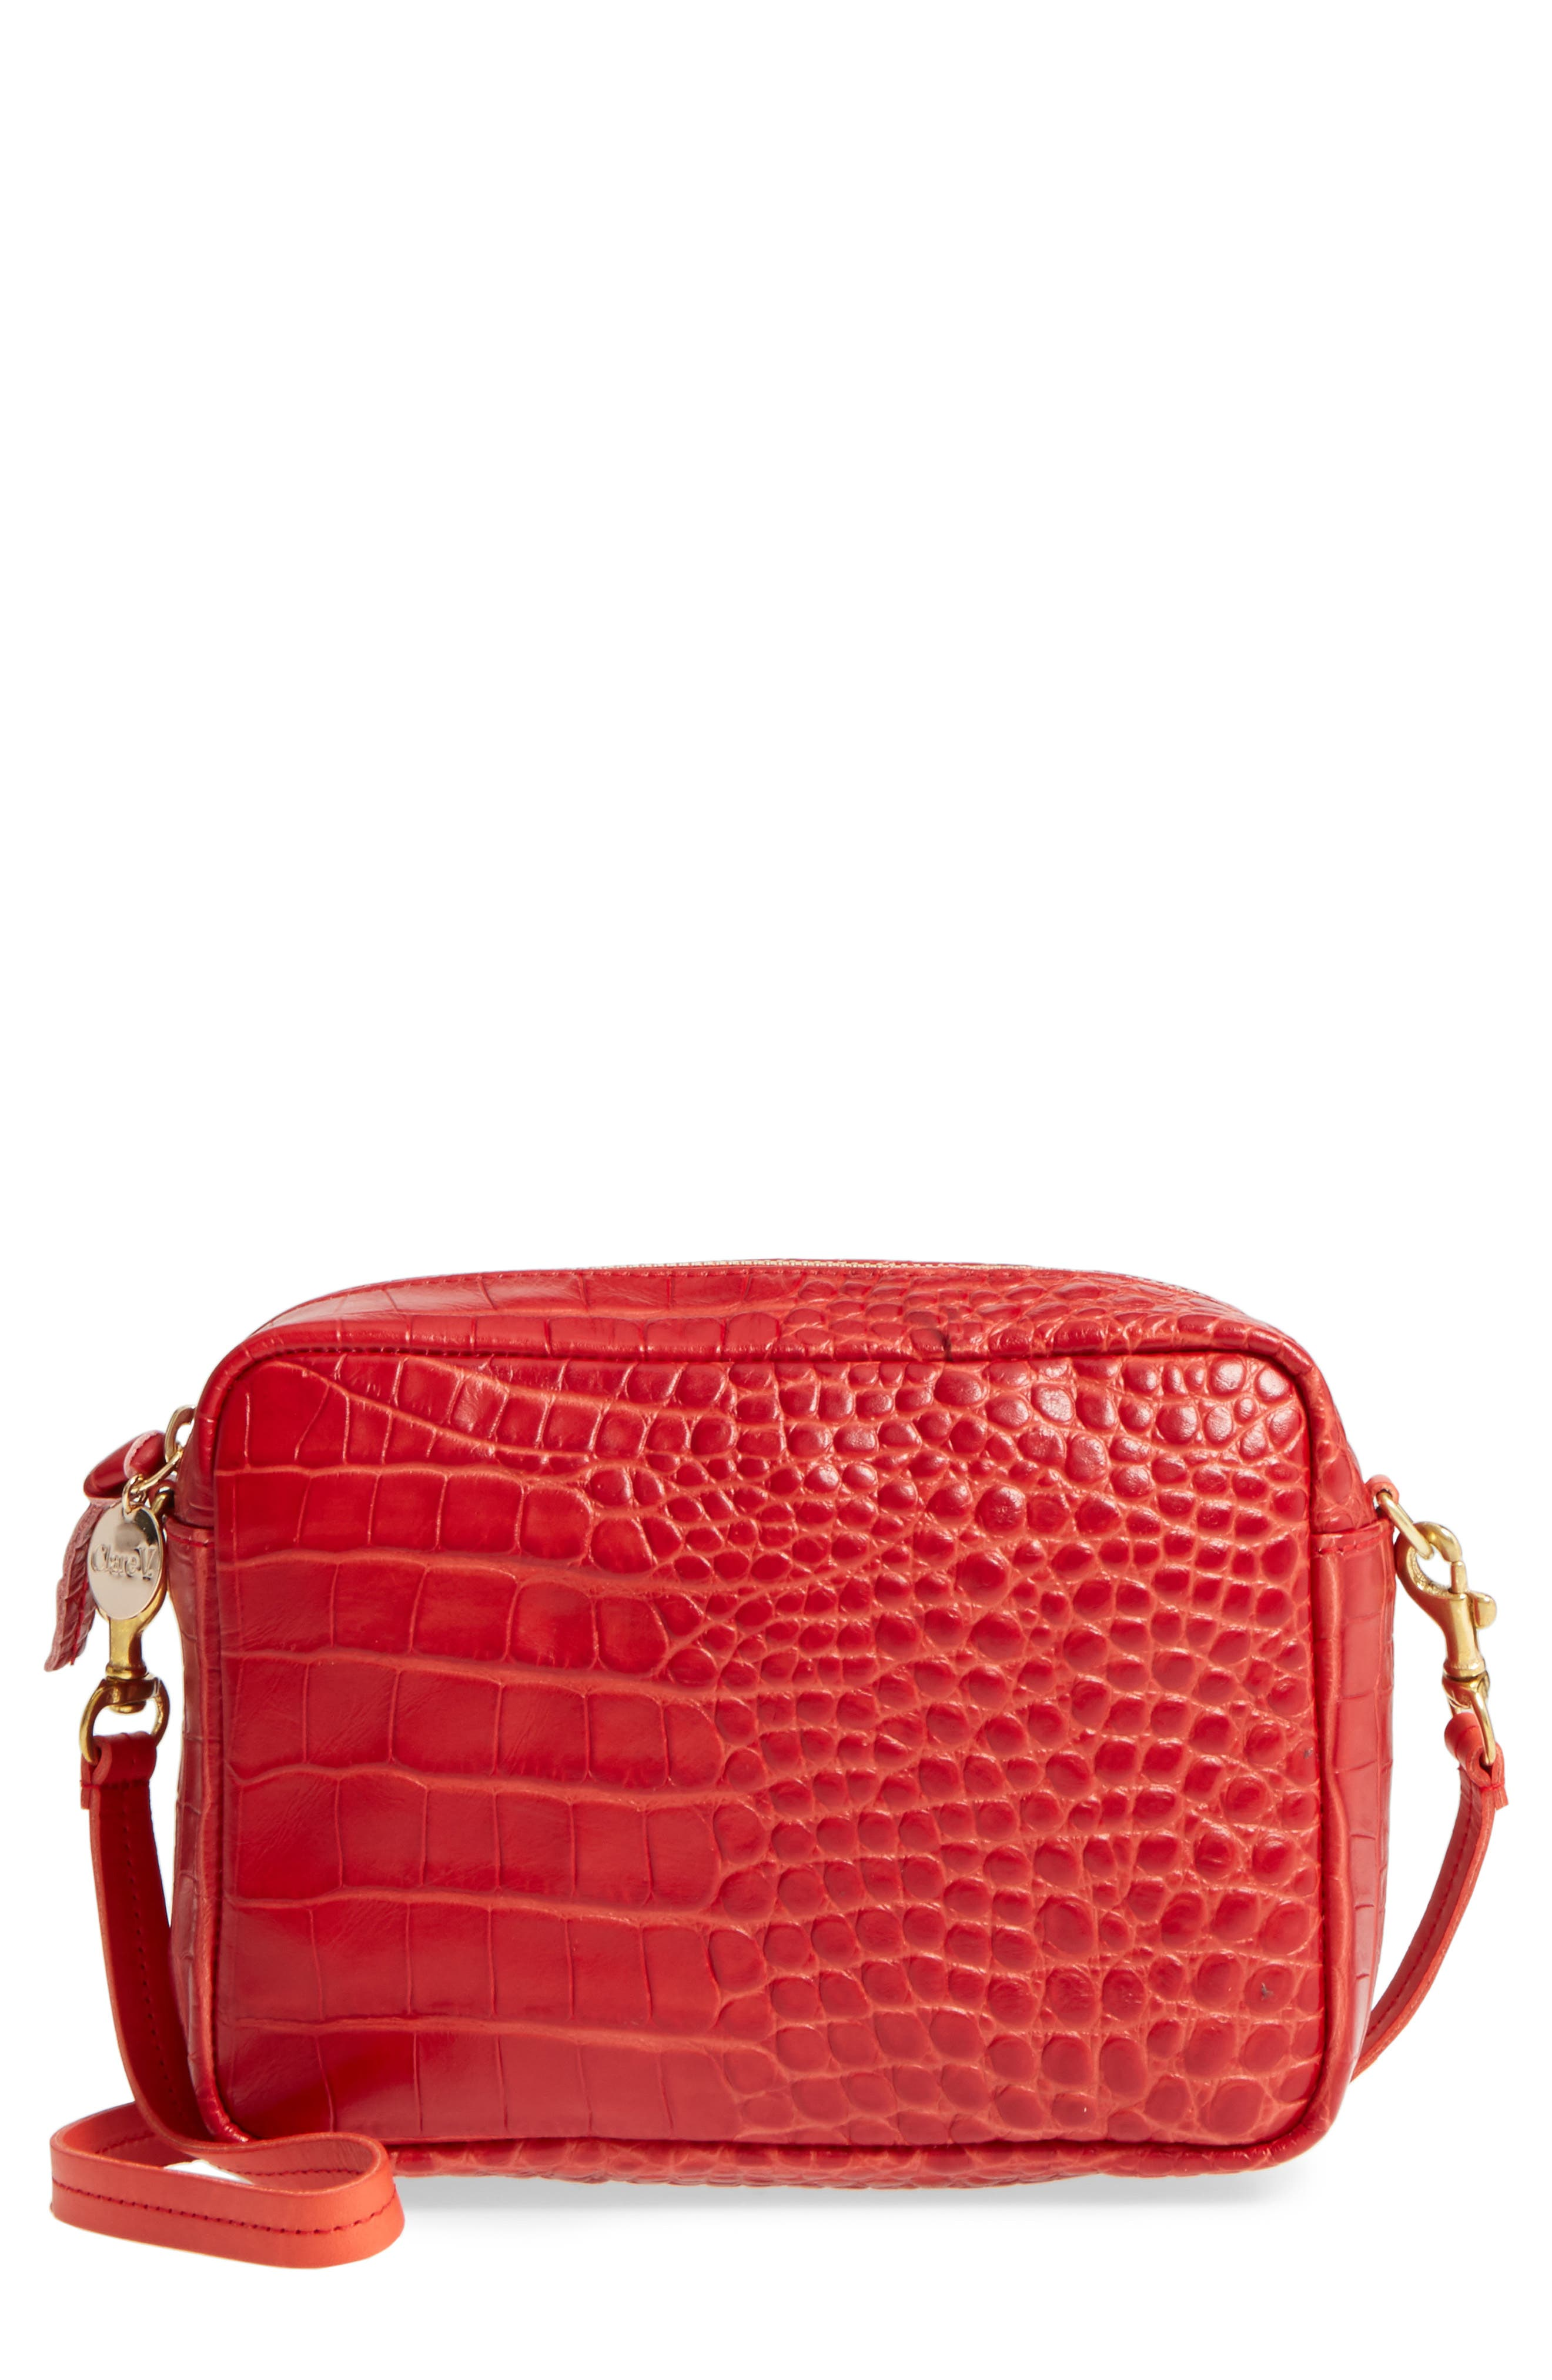 Alternate Image 1 Selected - Clare V. Midi Sac Supreme Croc Embossed Leather Crossbody Bag